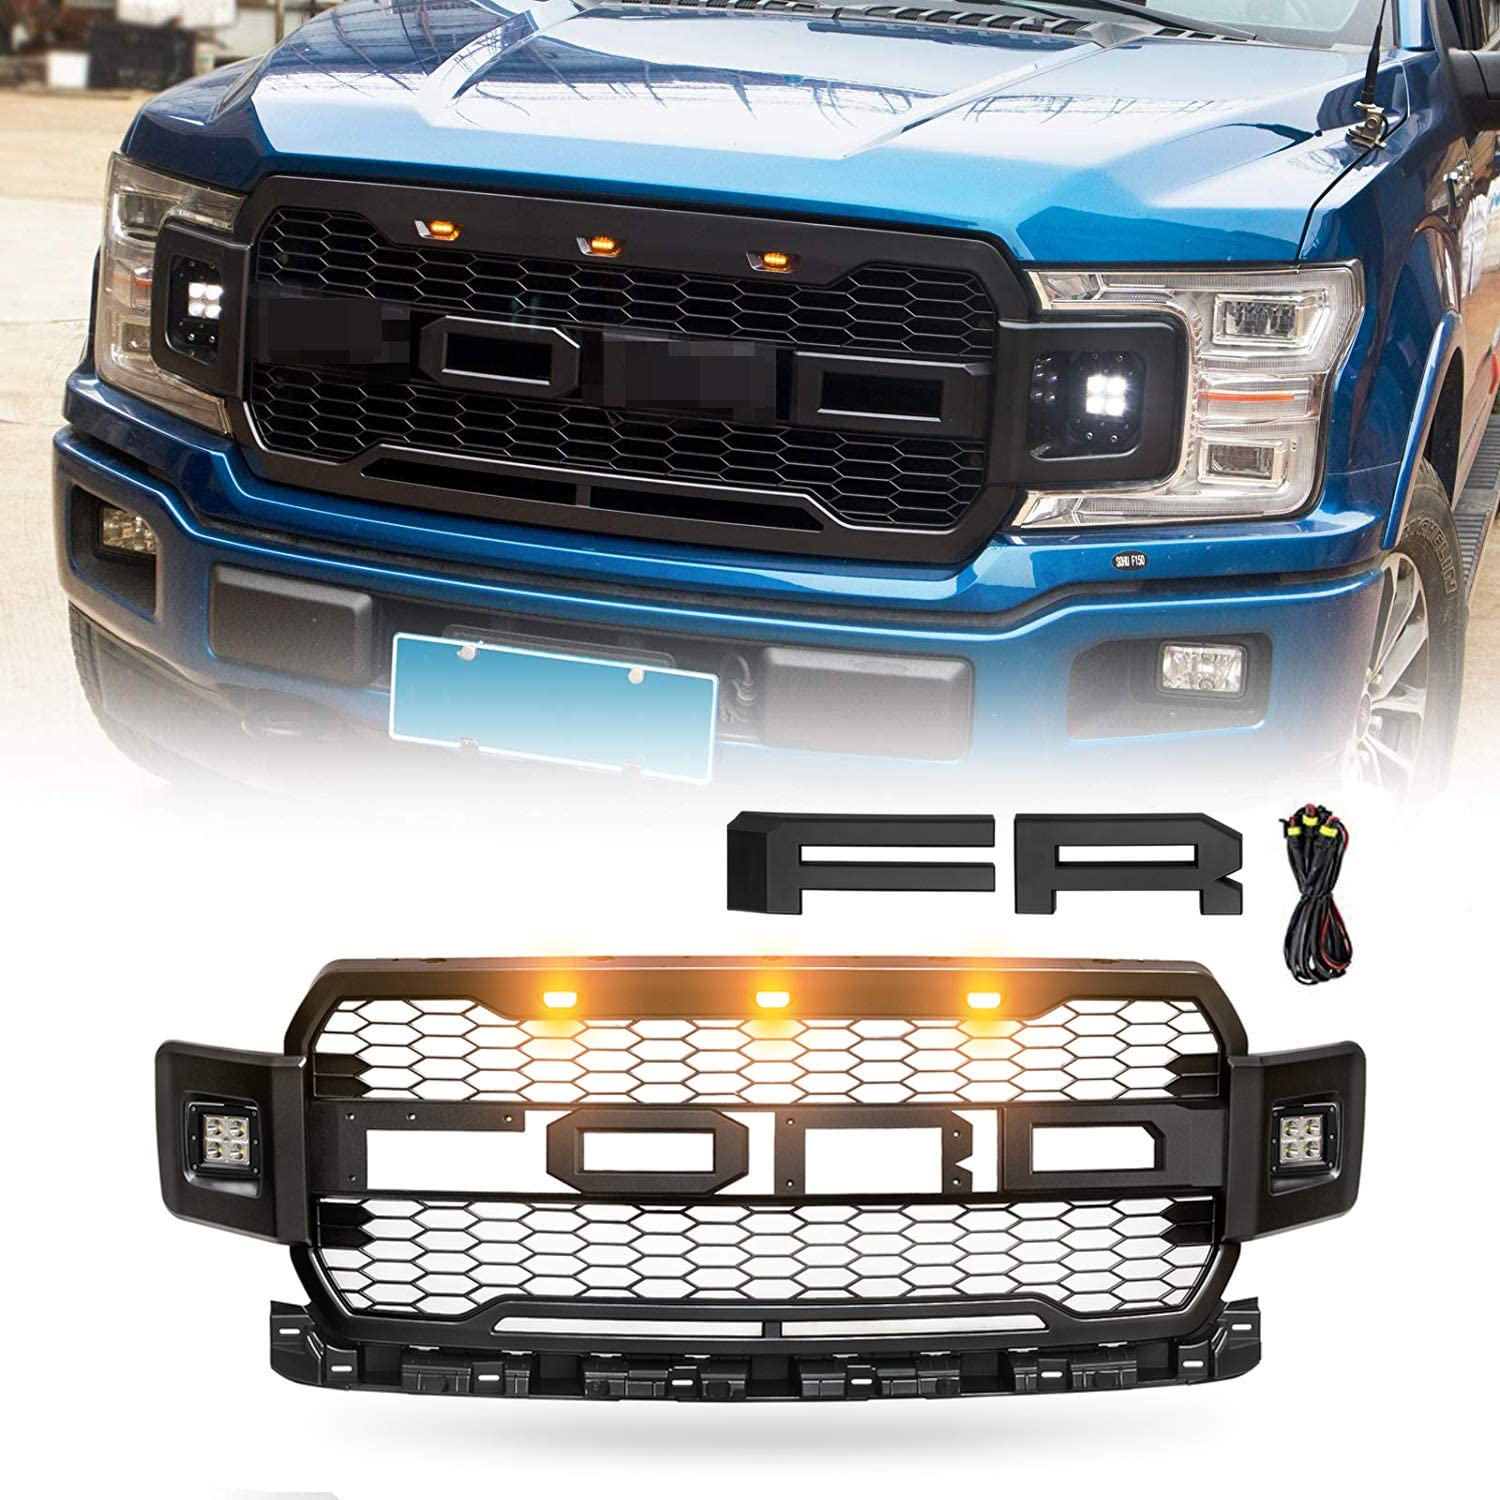 [SCHEMATICS_4US]  Amazon.com: VZ4X4 Raptor Style Grille ABS Mesh Grill, Compatible with Ford F -150 2018 2019 2020 F150 - Matte Black: Automotive | Abs Wiring Diagram 03 Ford F 150 |  | Amazon.com